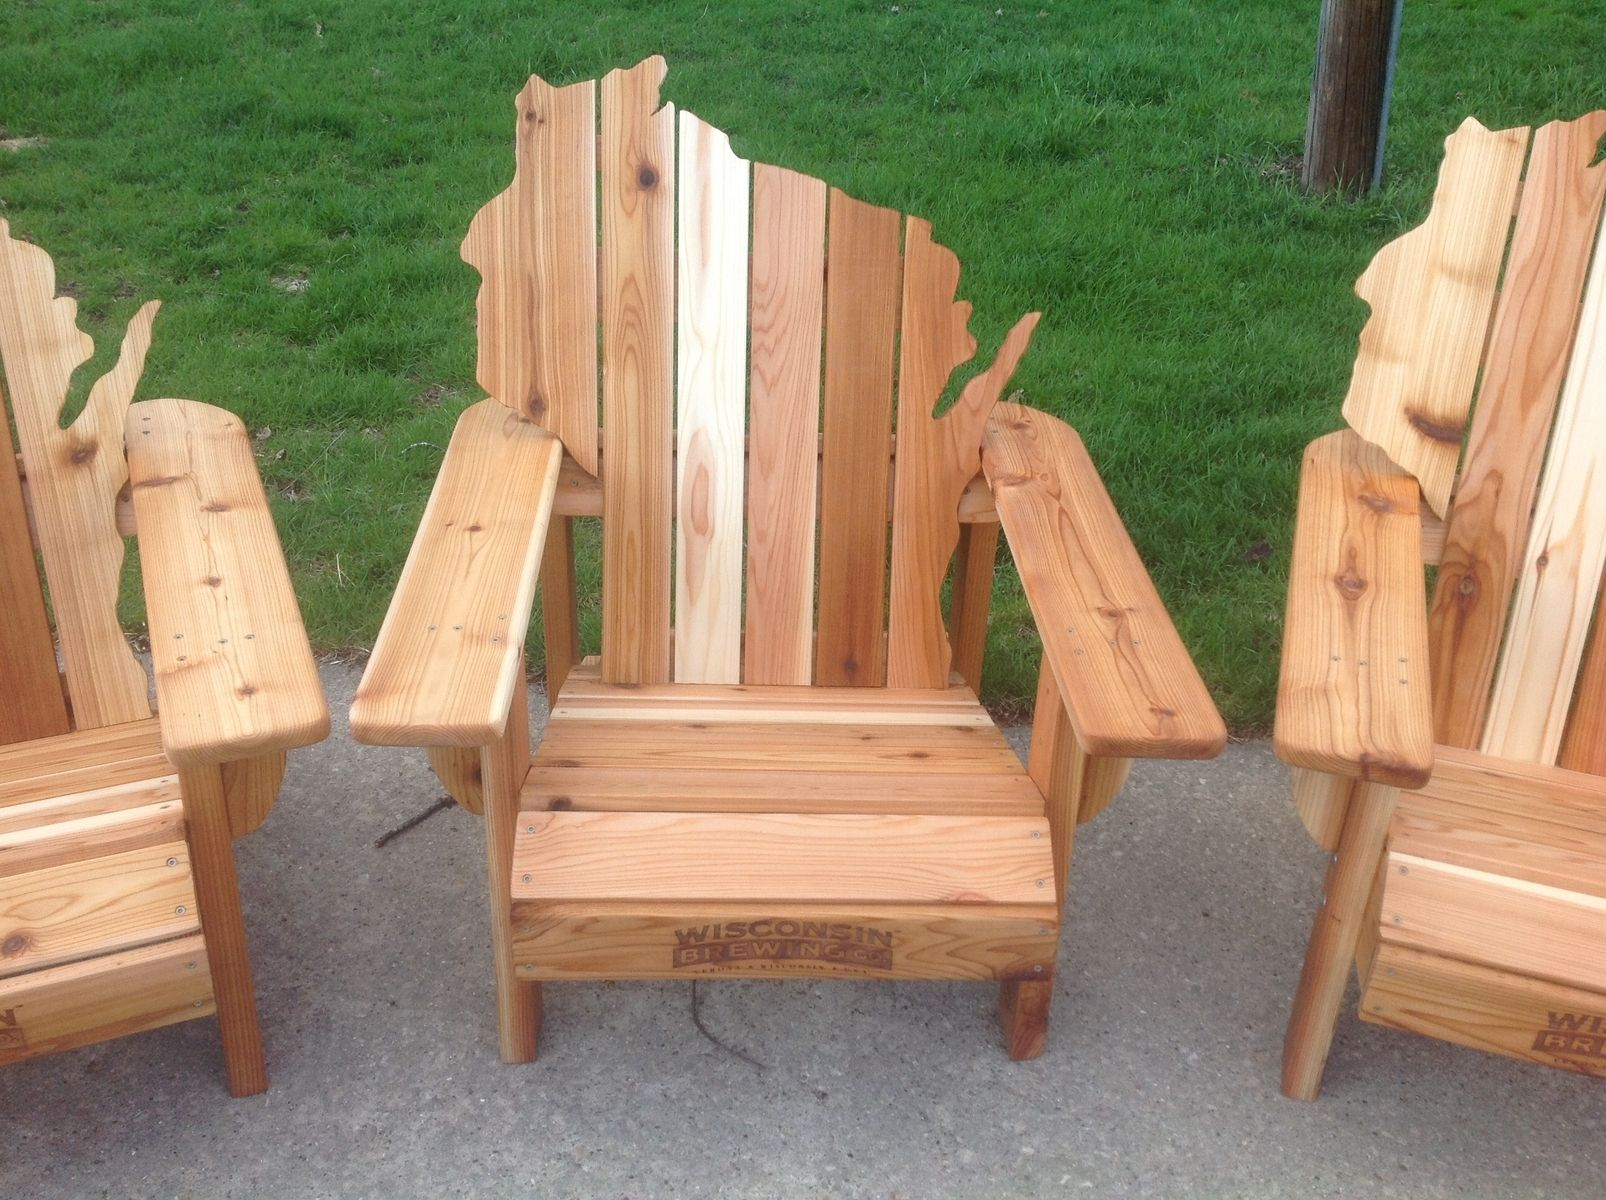 Handmade Cedar Adirondack Wisconsin Chairs With Personalized Laser